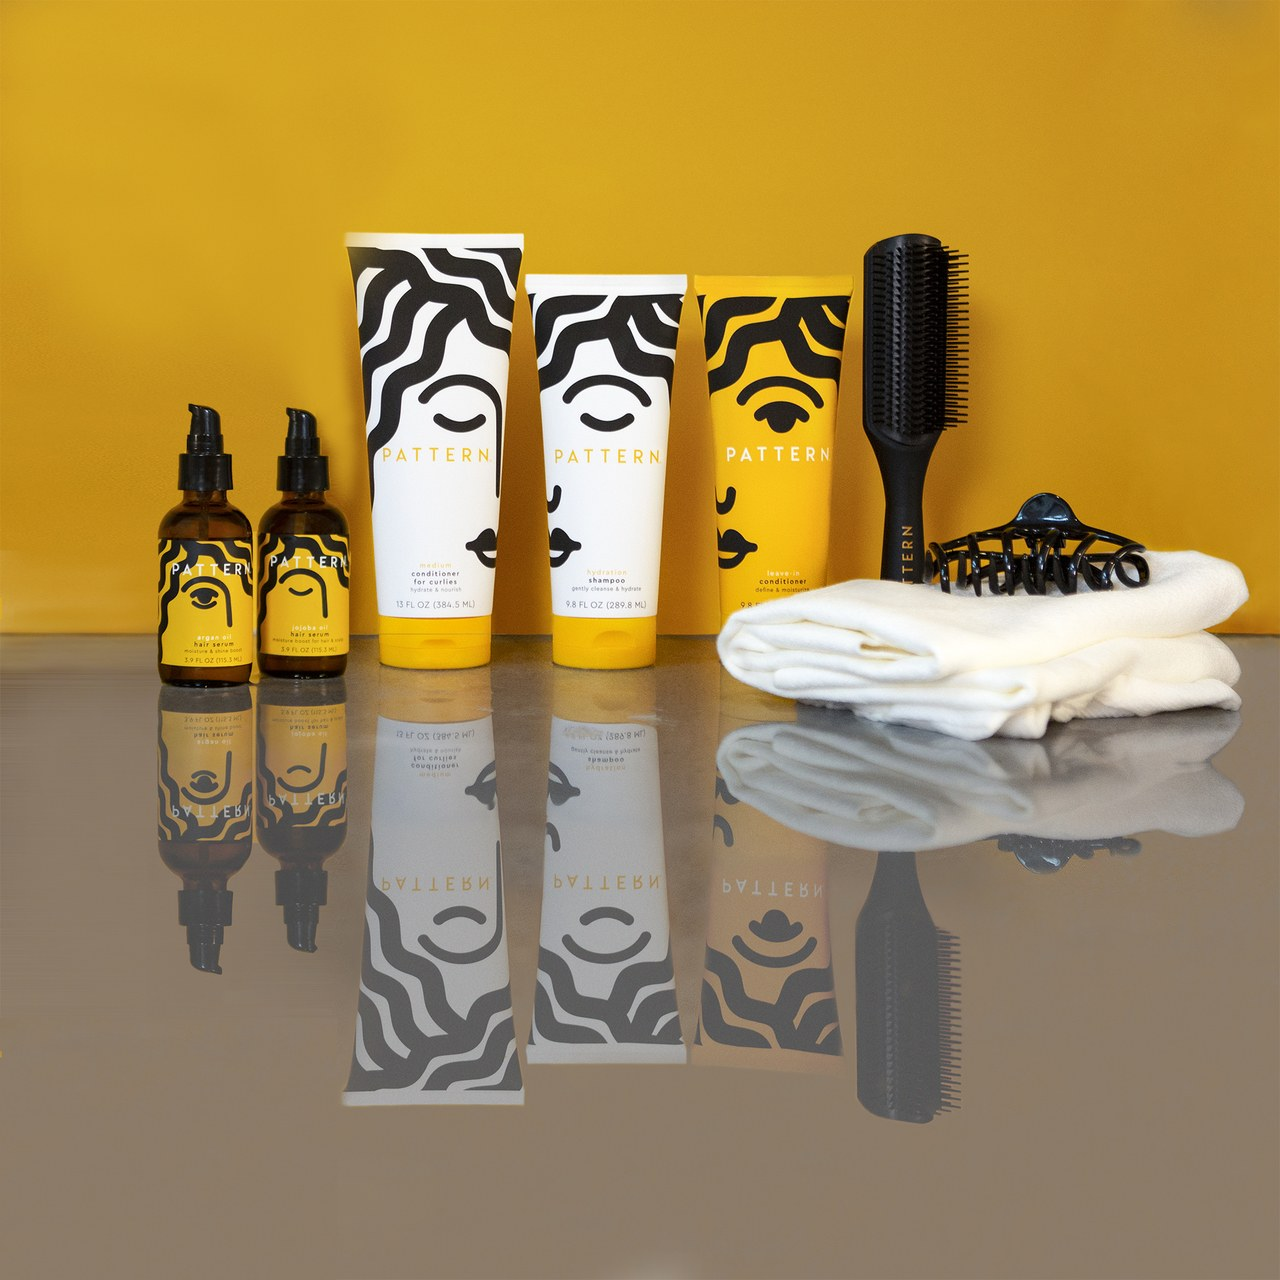 Products from PATTERN Beauty line, image via Allure